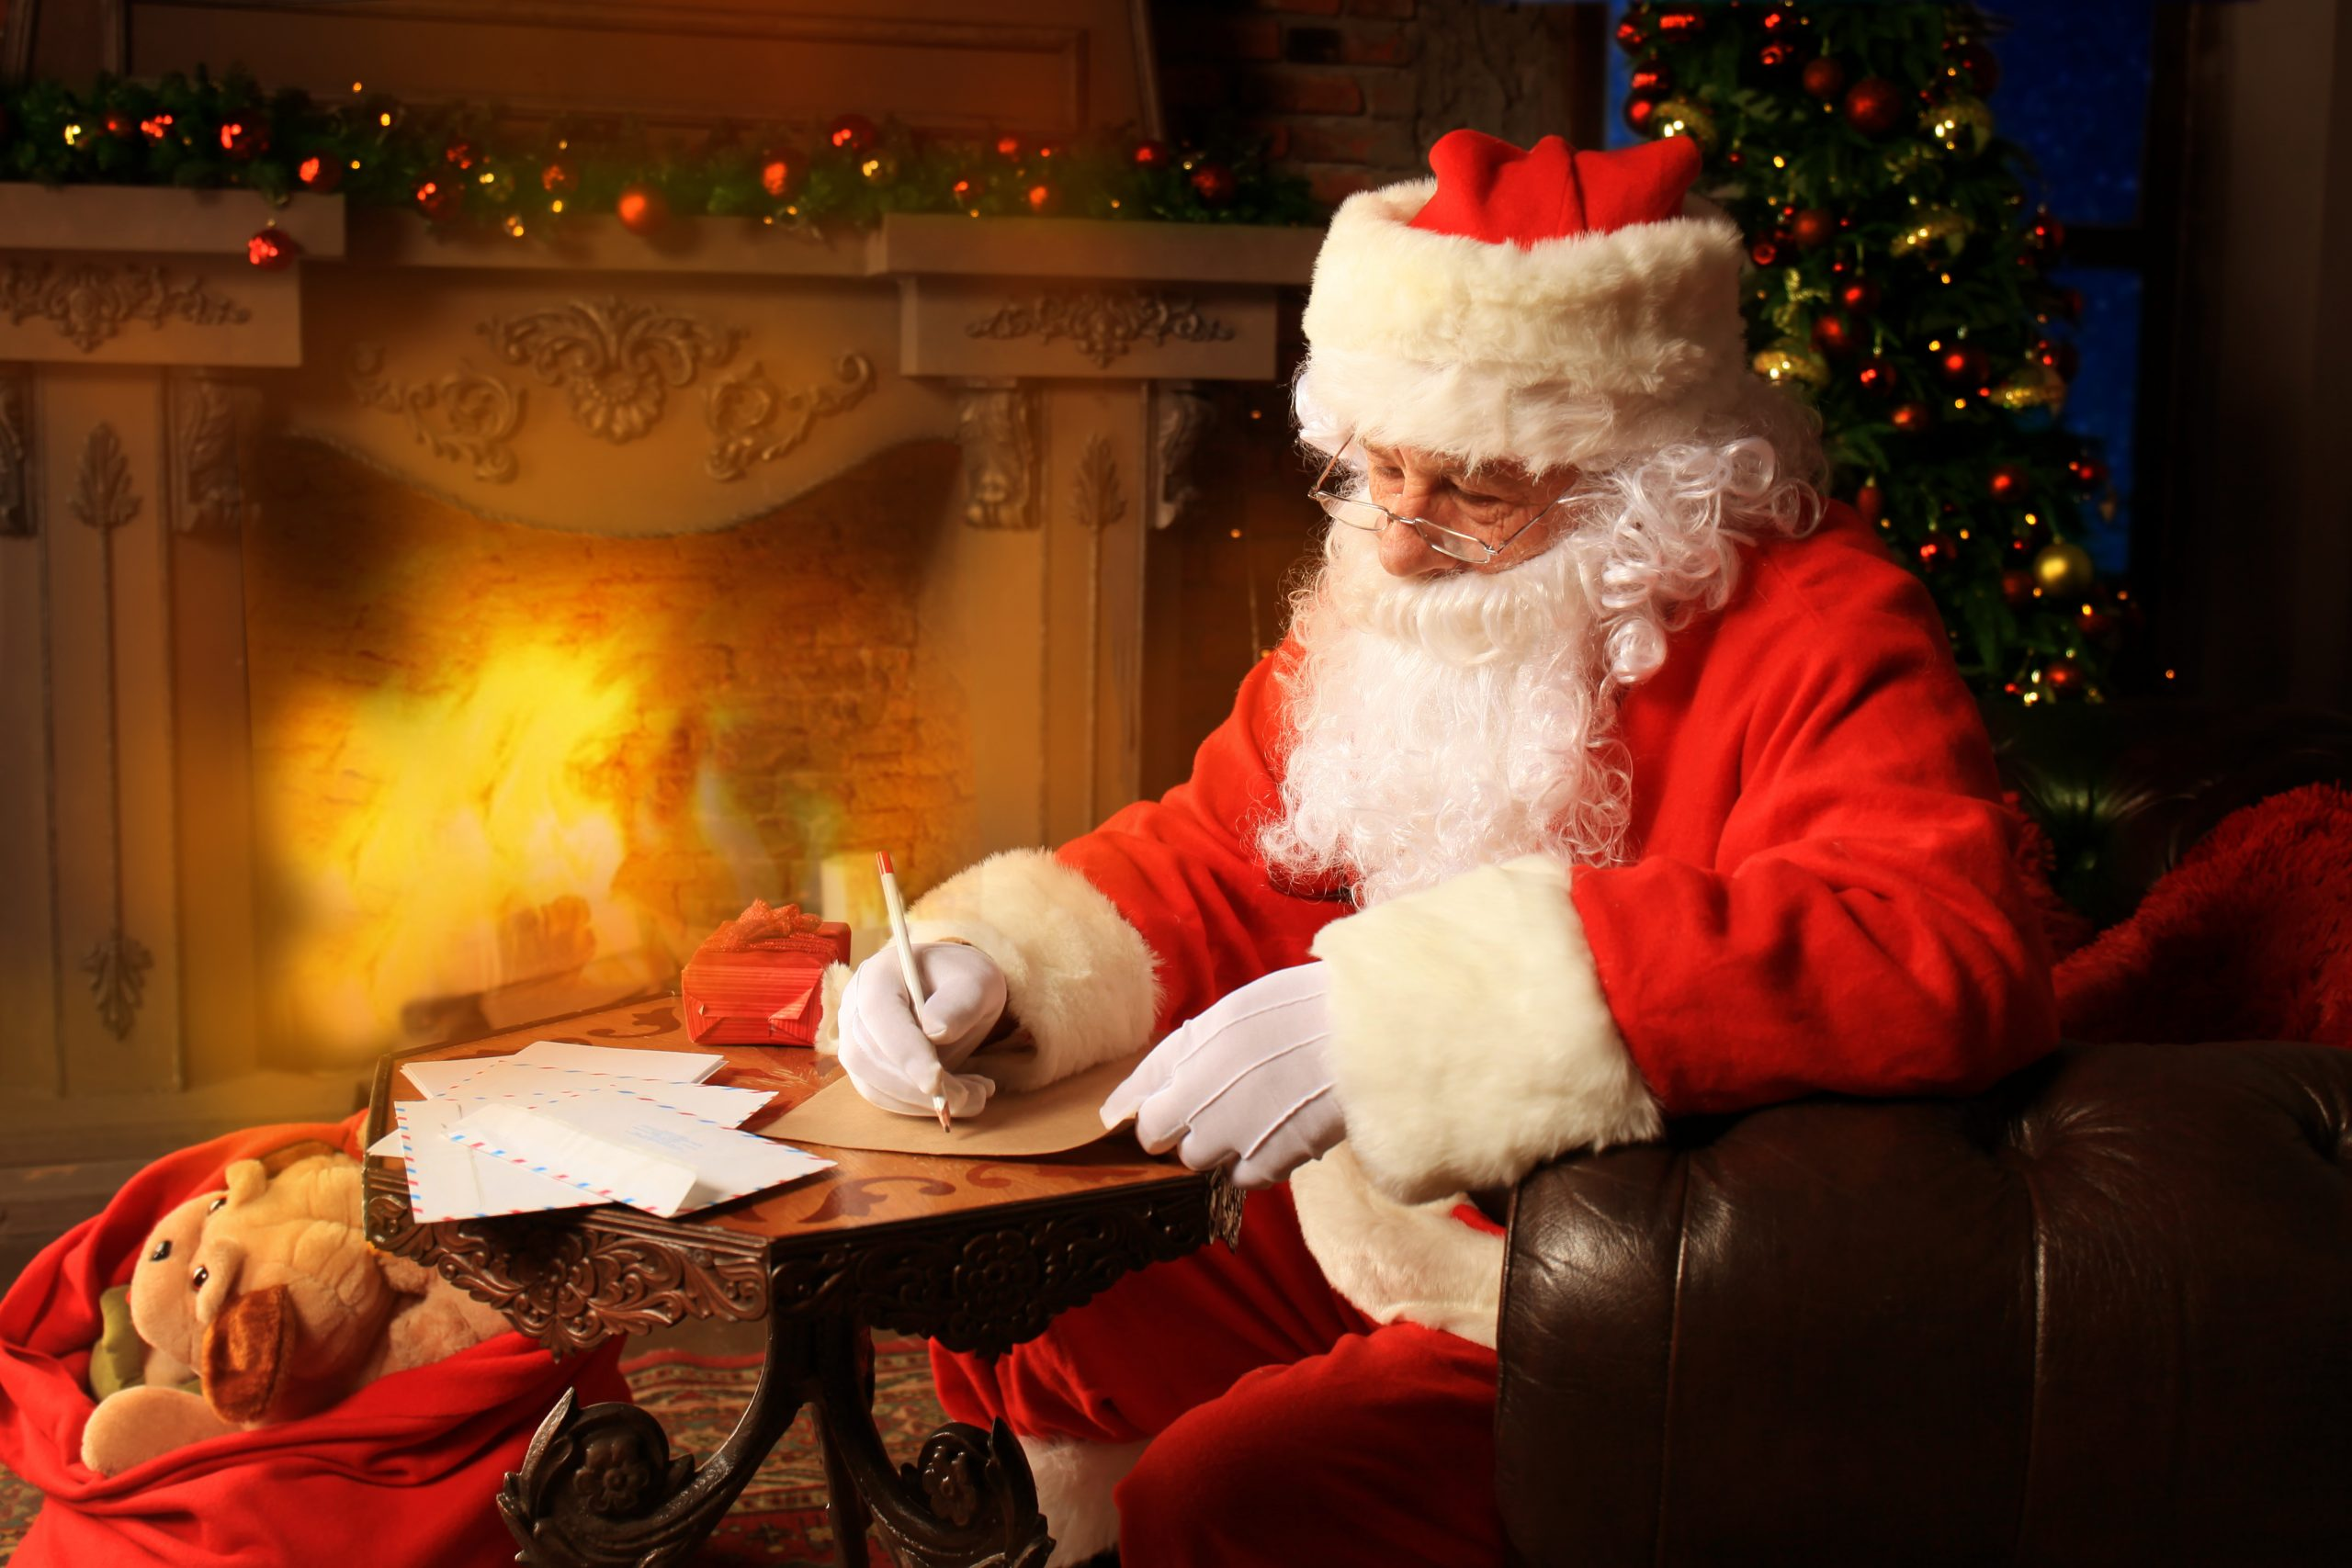 Santa writing letters in front of a fireplace